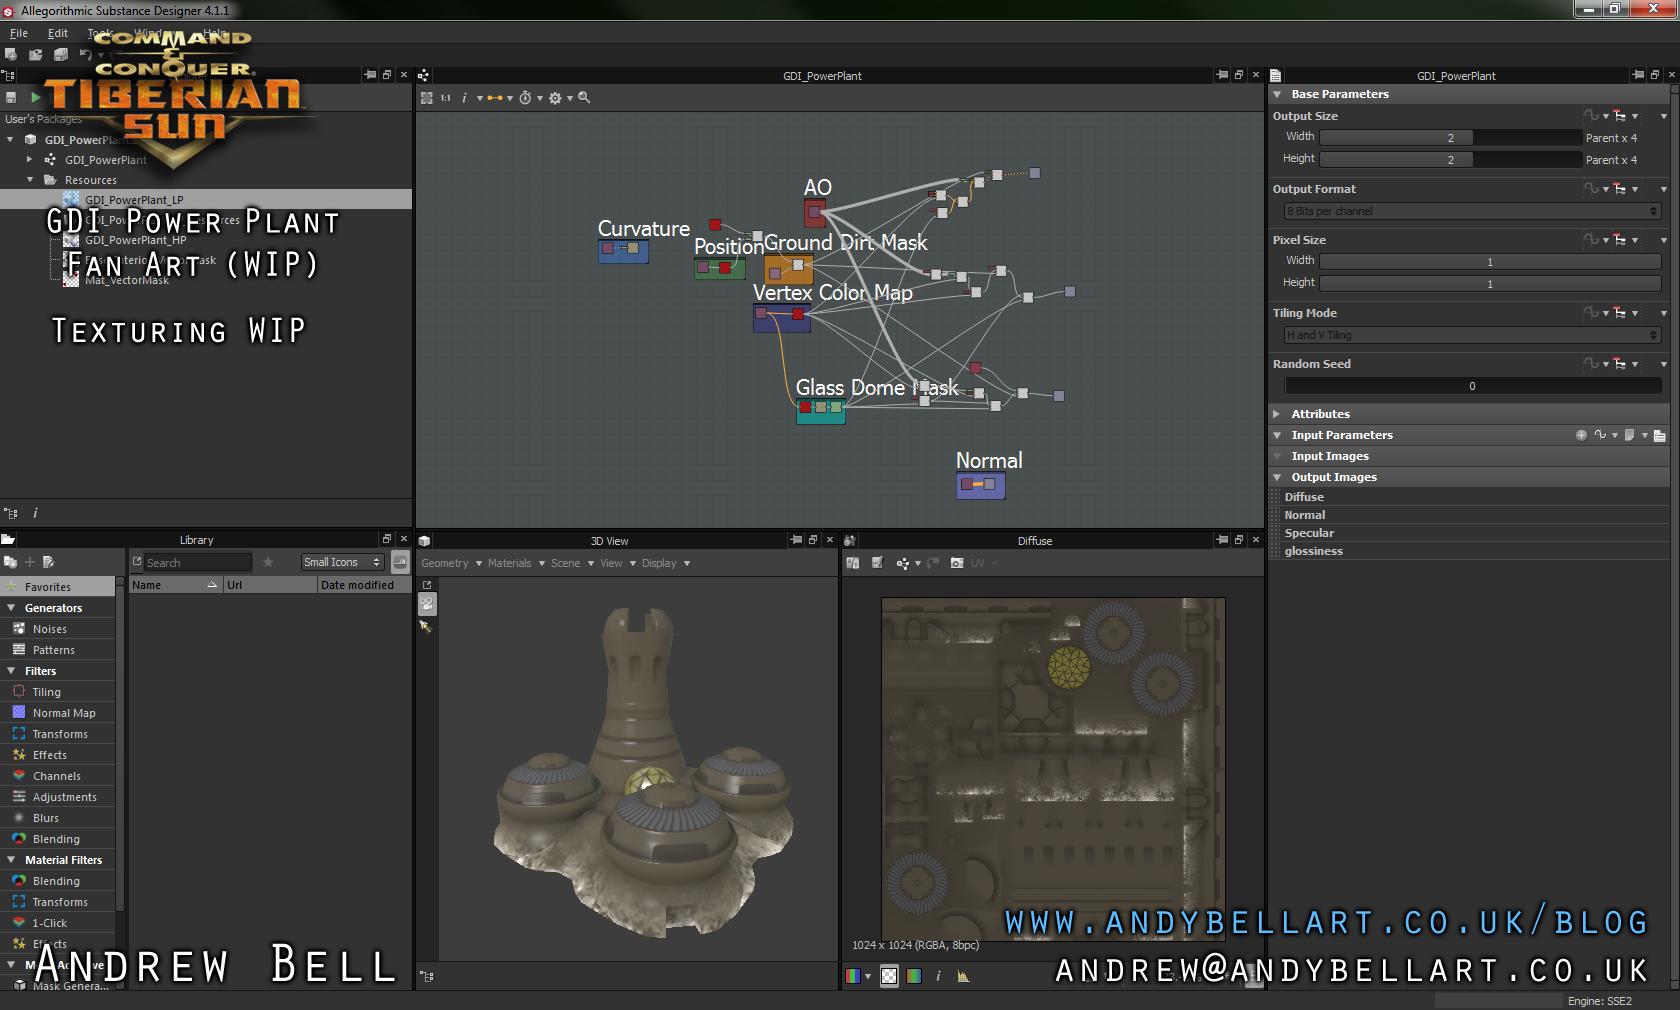 GDI Power Plant - Texturing WIP - Substance Designer Screenshot